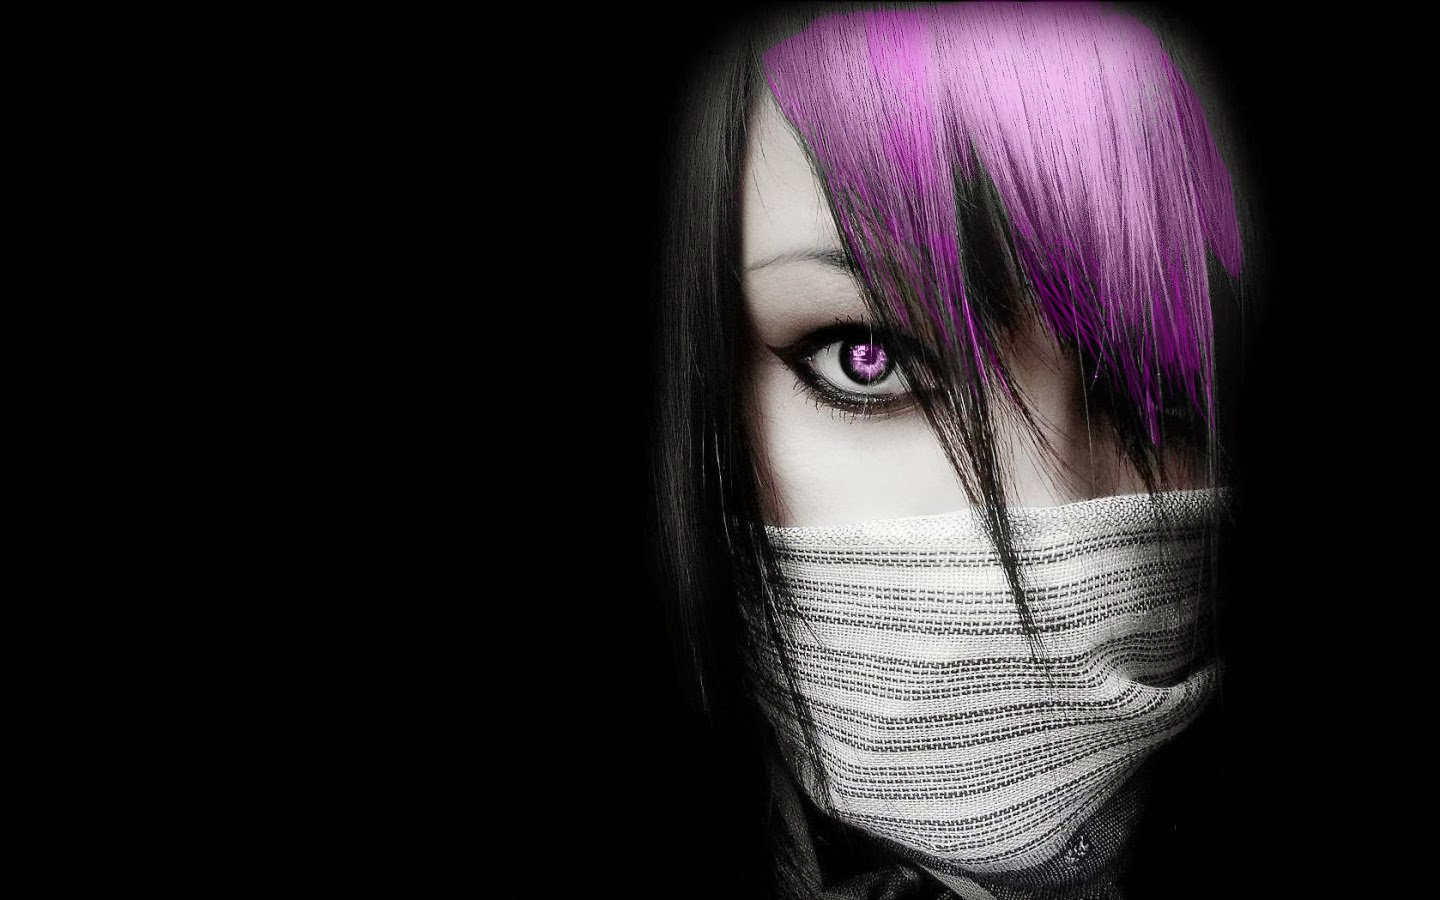 Cute And Cool Emo Pictures For Girls  creativemisha 1440x900